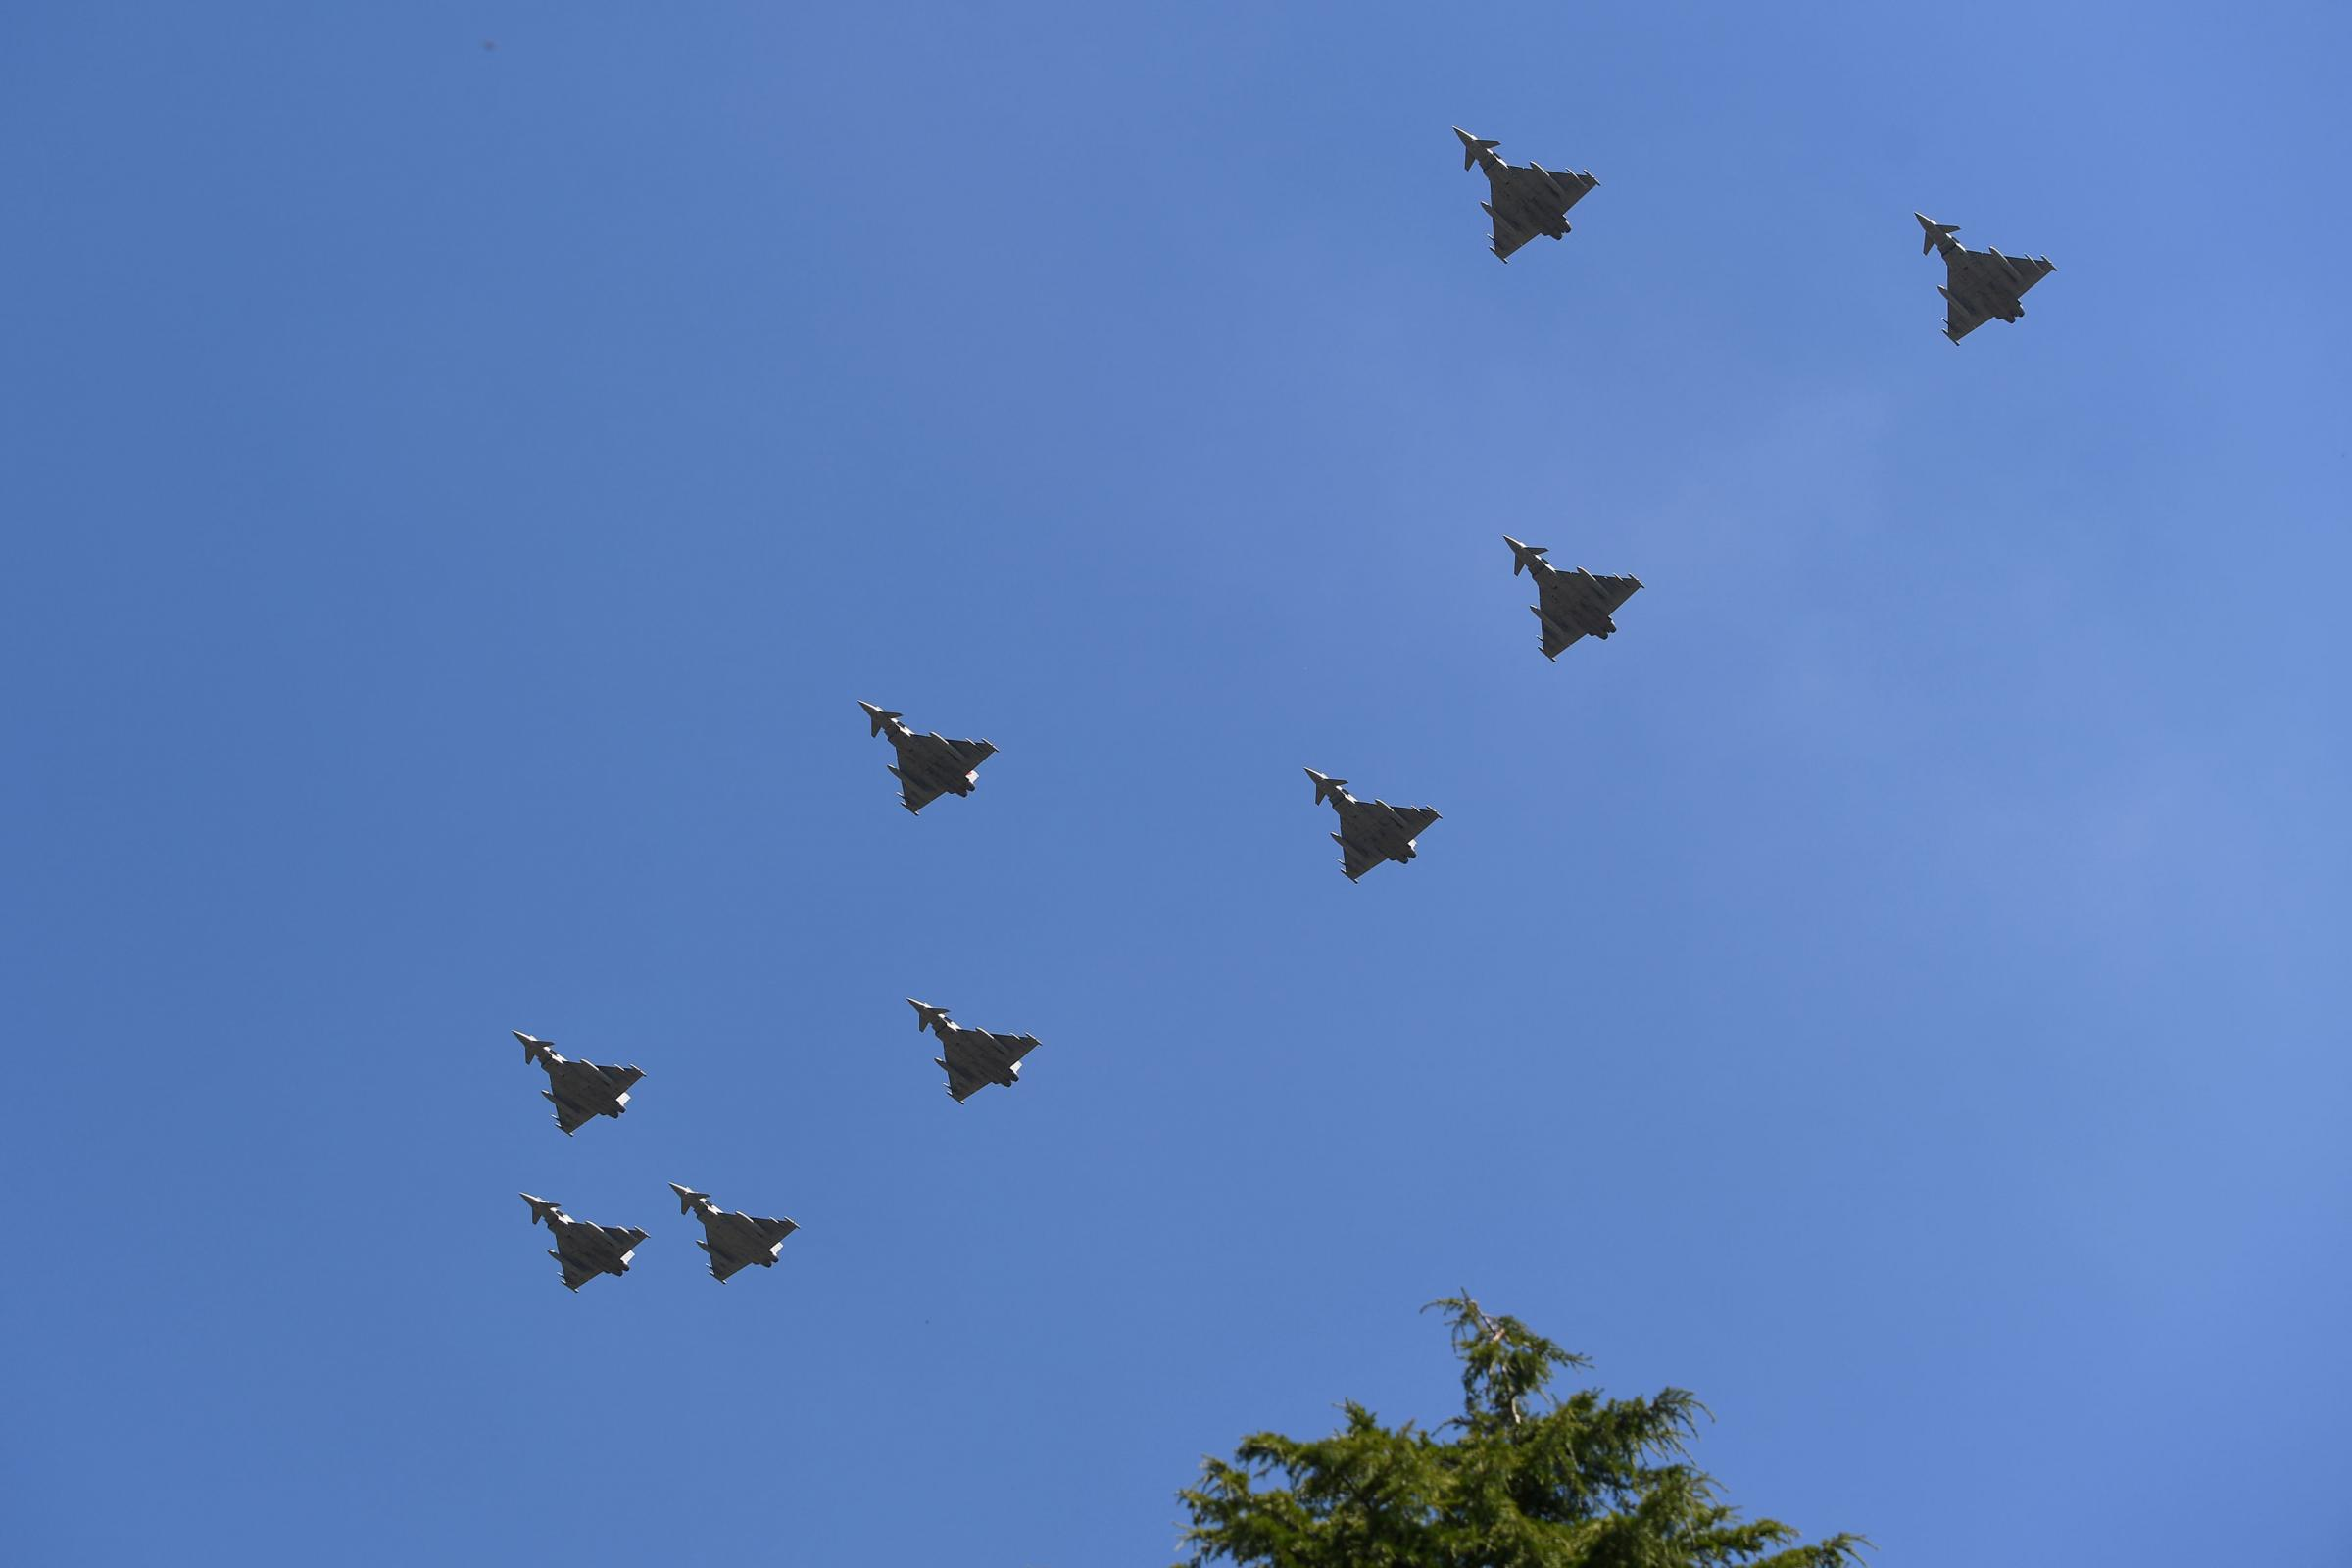 Typhoon jets from the Royal Air Force flying over RAF Cranwell in Lincolnshire as a rehearsal for their centenary flypast over Buckingham Palace in central London on July 10    Picture: JOE GIDDENS/PA